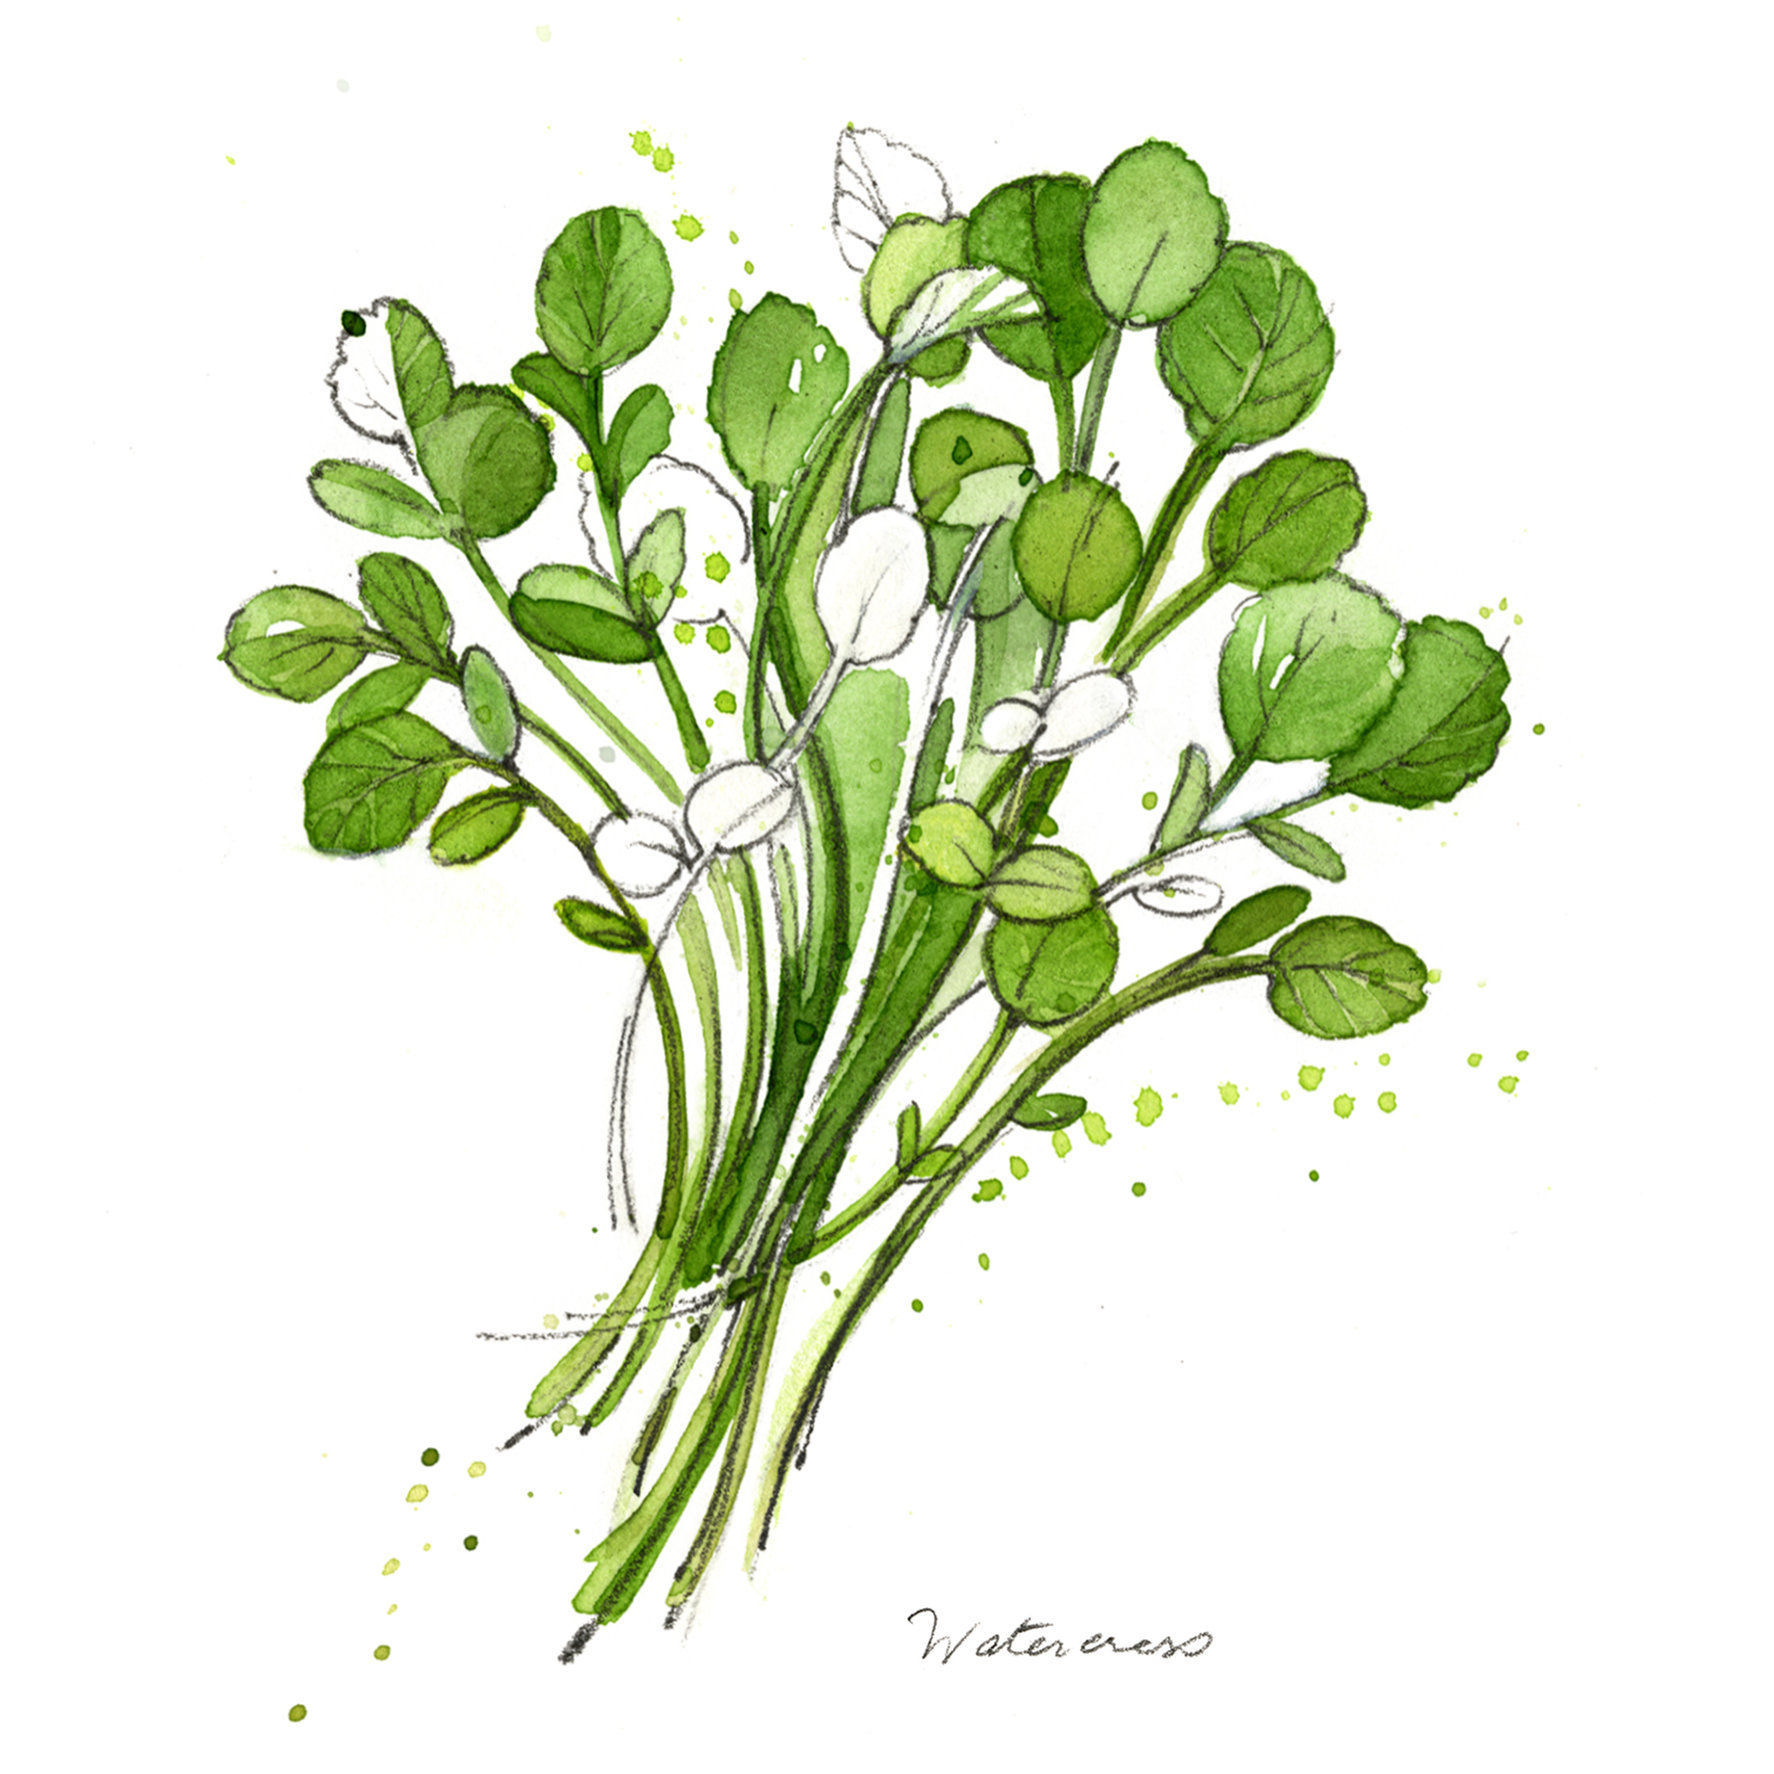 Narda_YETI.WildWatercress.jpg